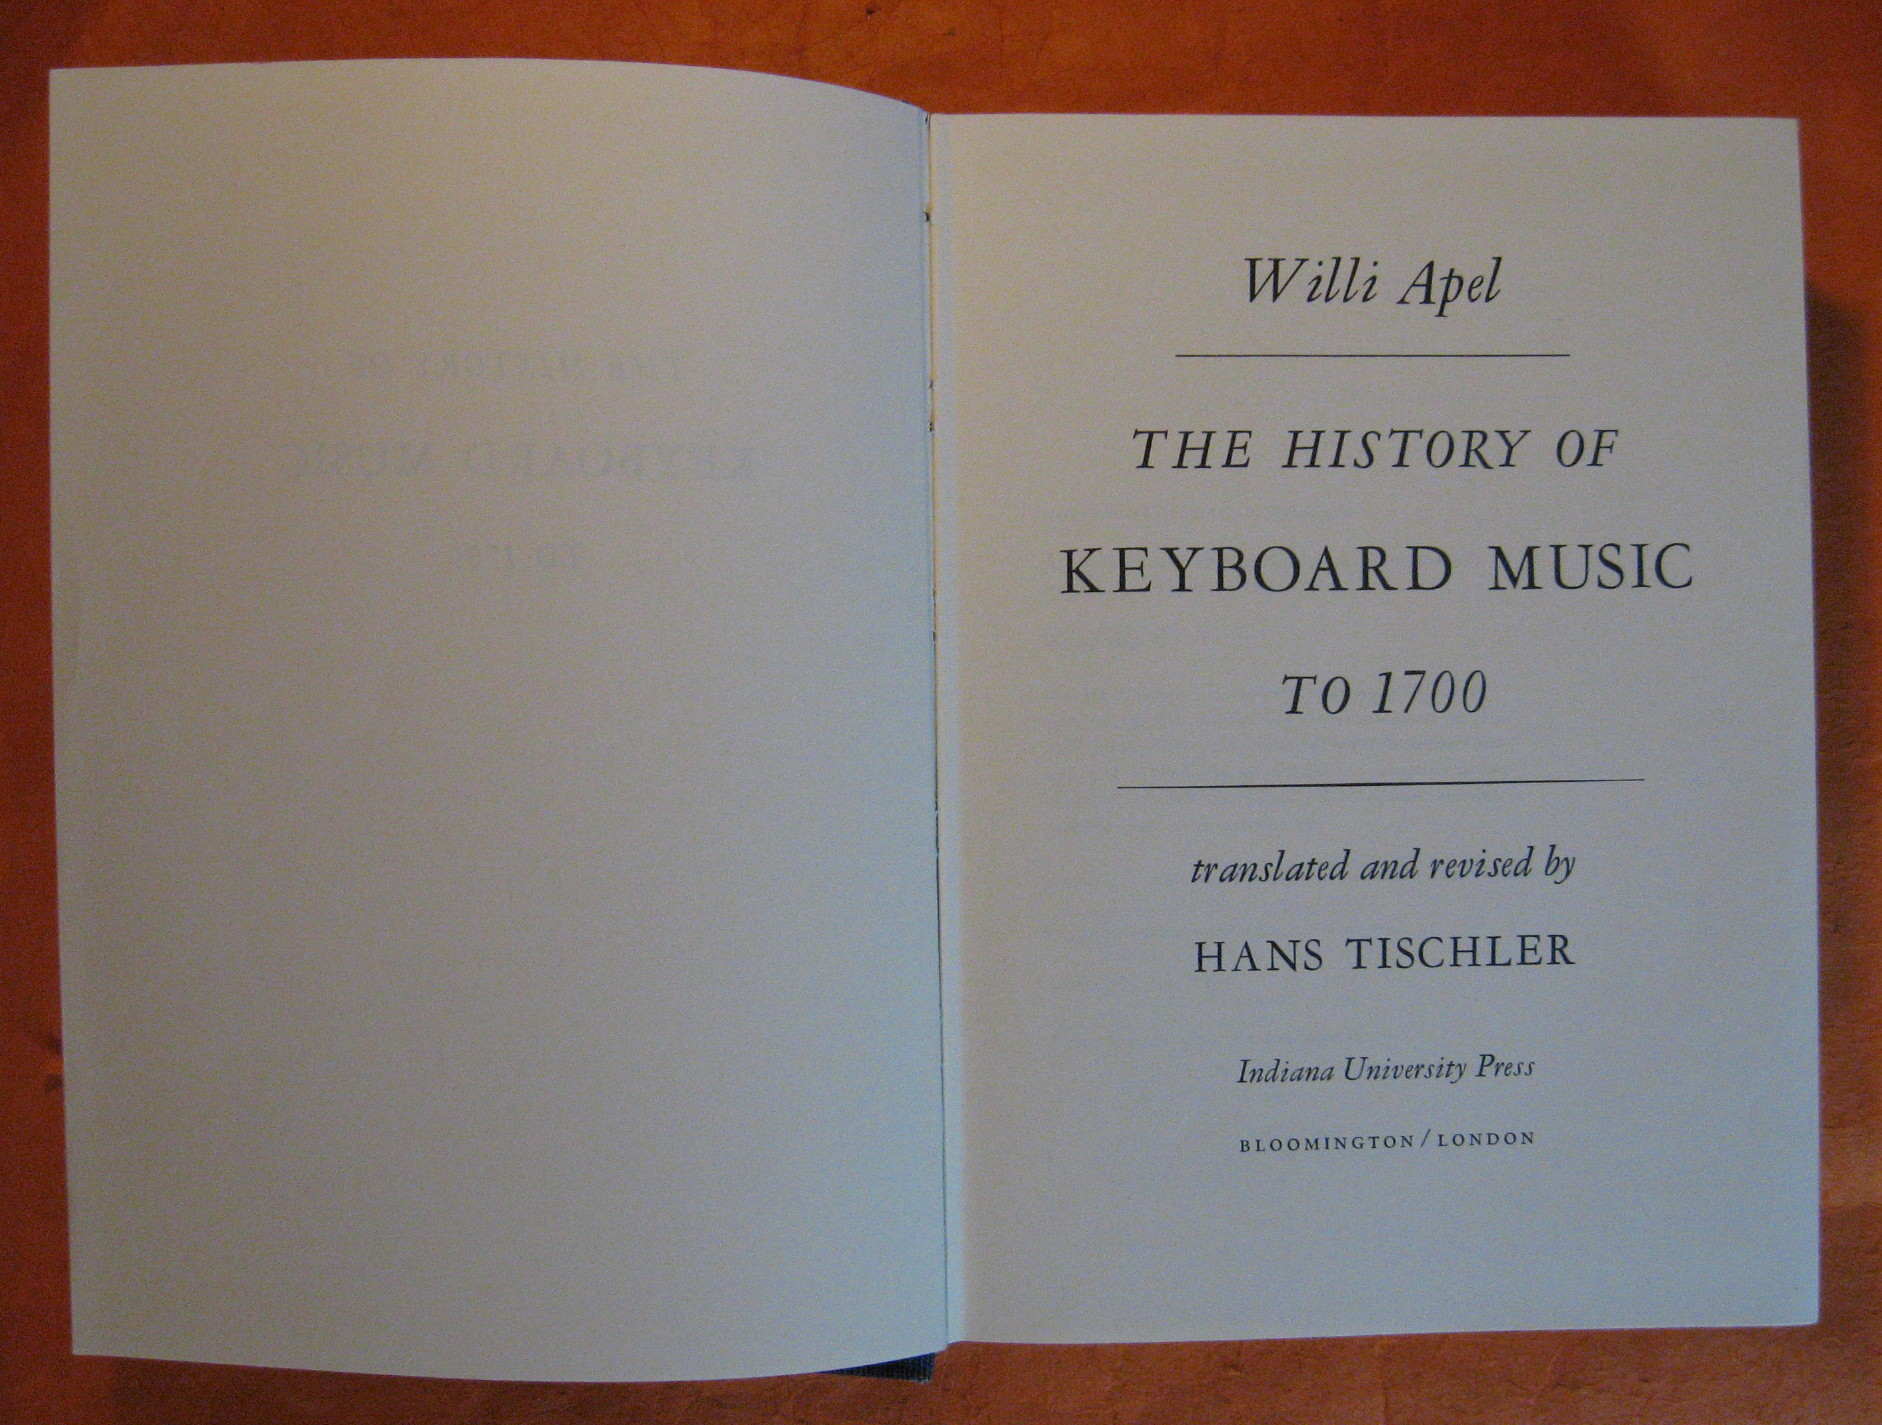 The History of Keyboard Music to 1700, Apel, Willi